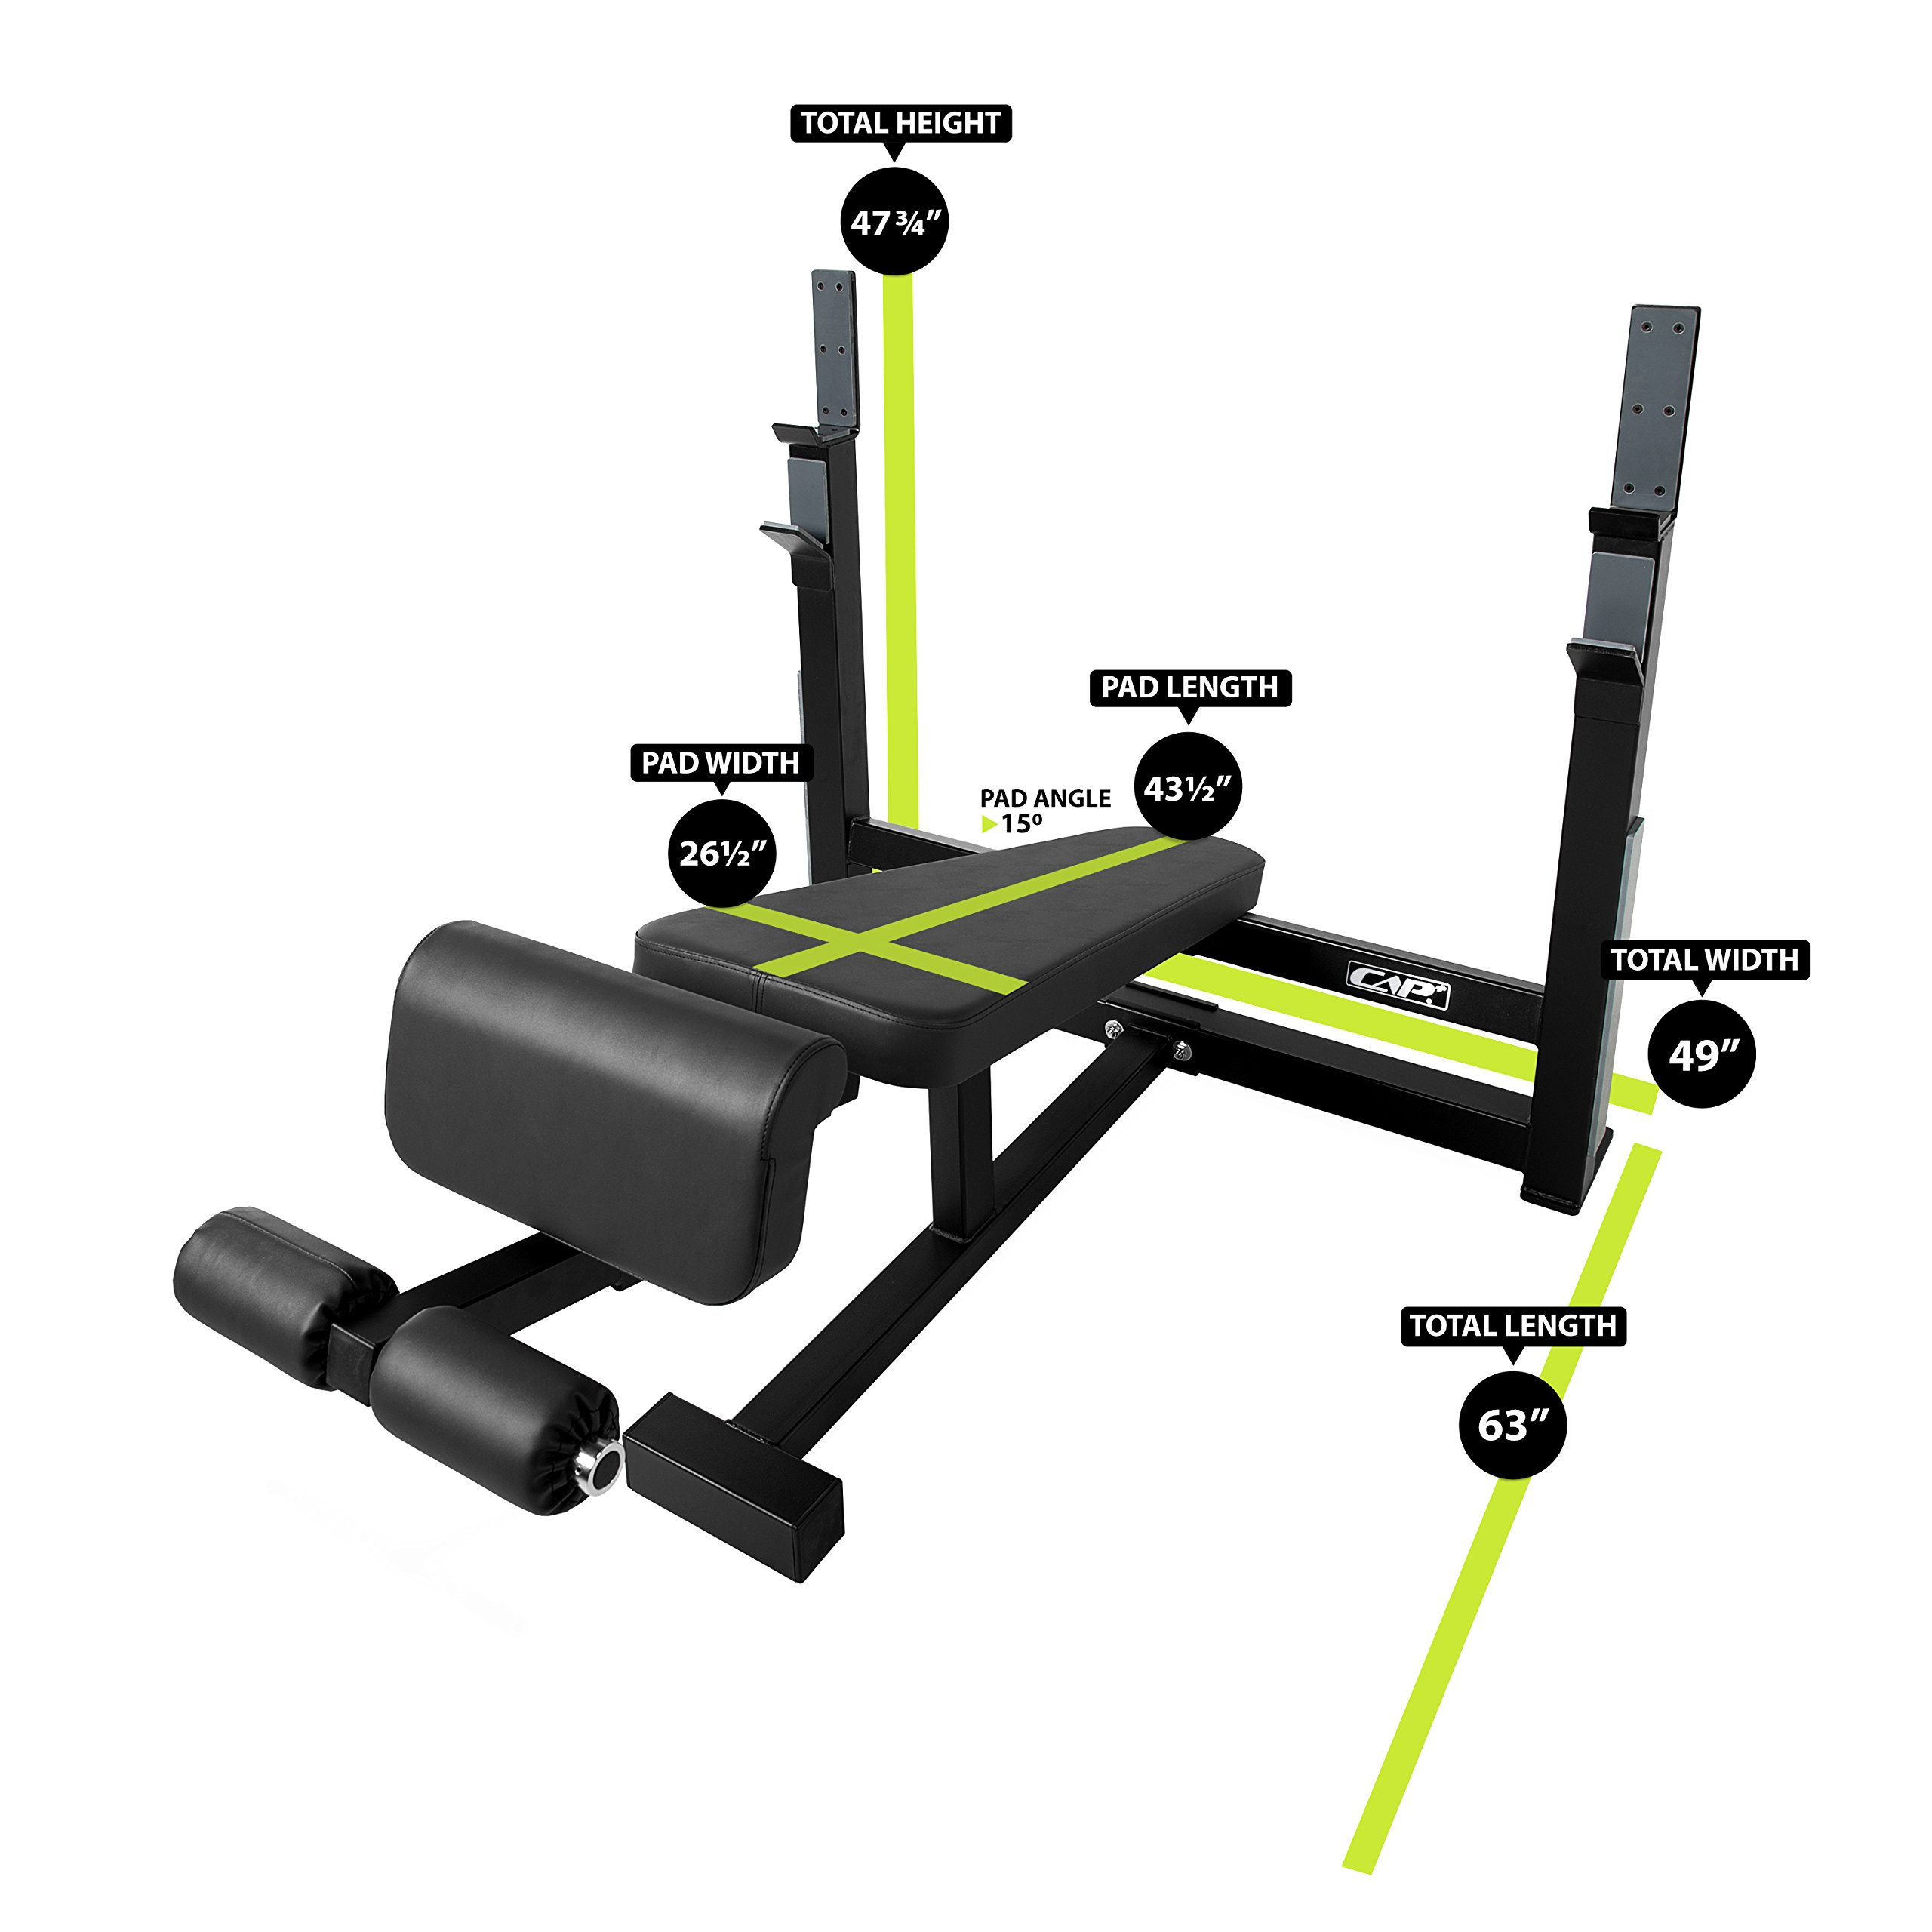 CAP Barbell 300-Pound Black Olympic Grip Set with Olympic Decline Bench by CAP Barbell (Image #2)